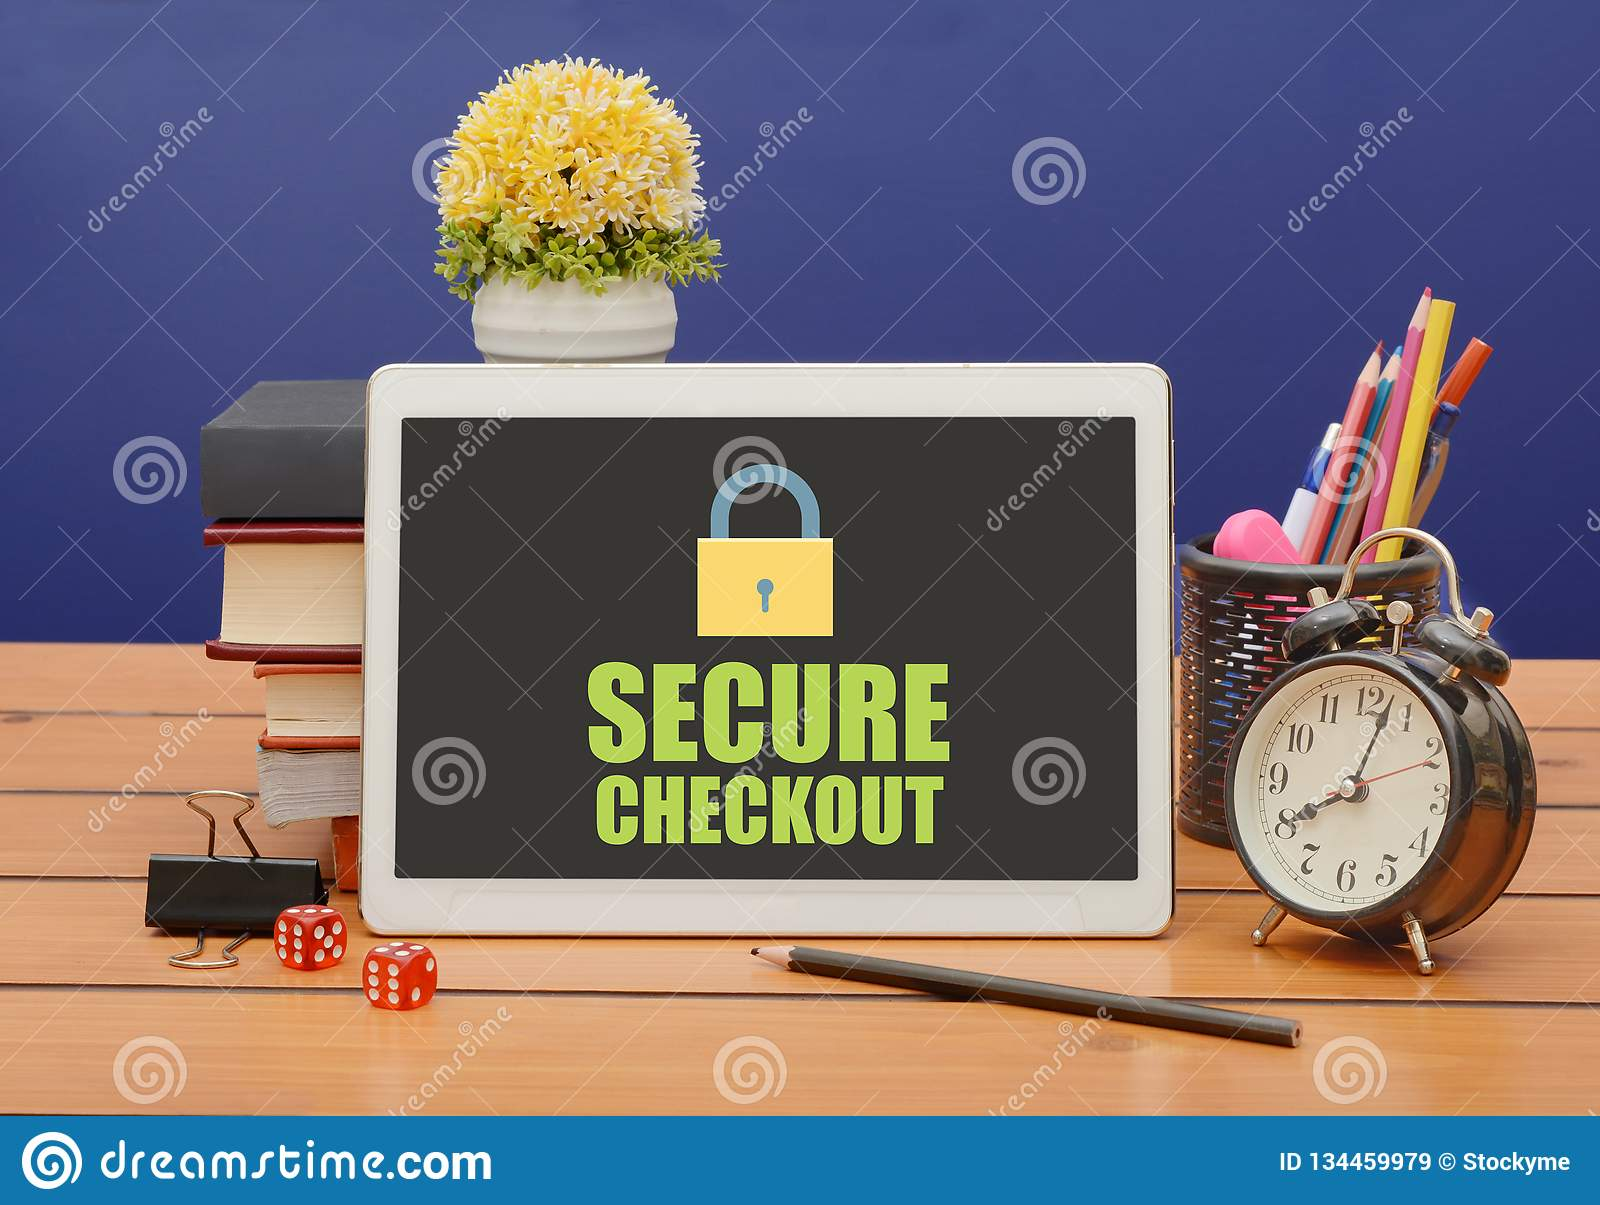 Secure checkout sign with lock icon on tablet